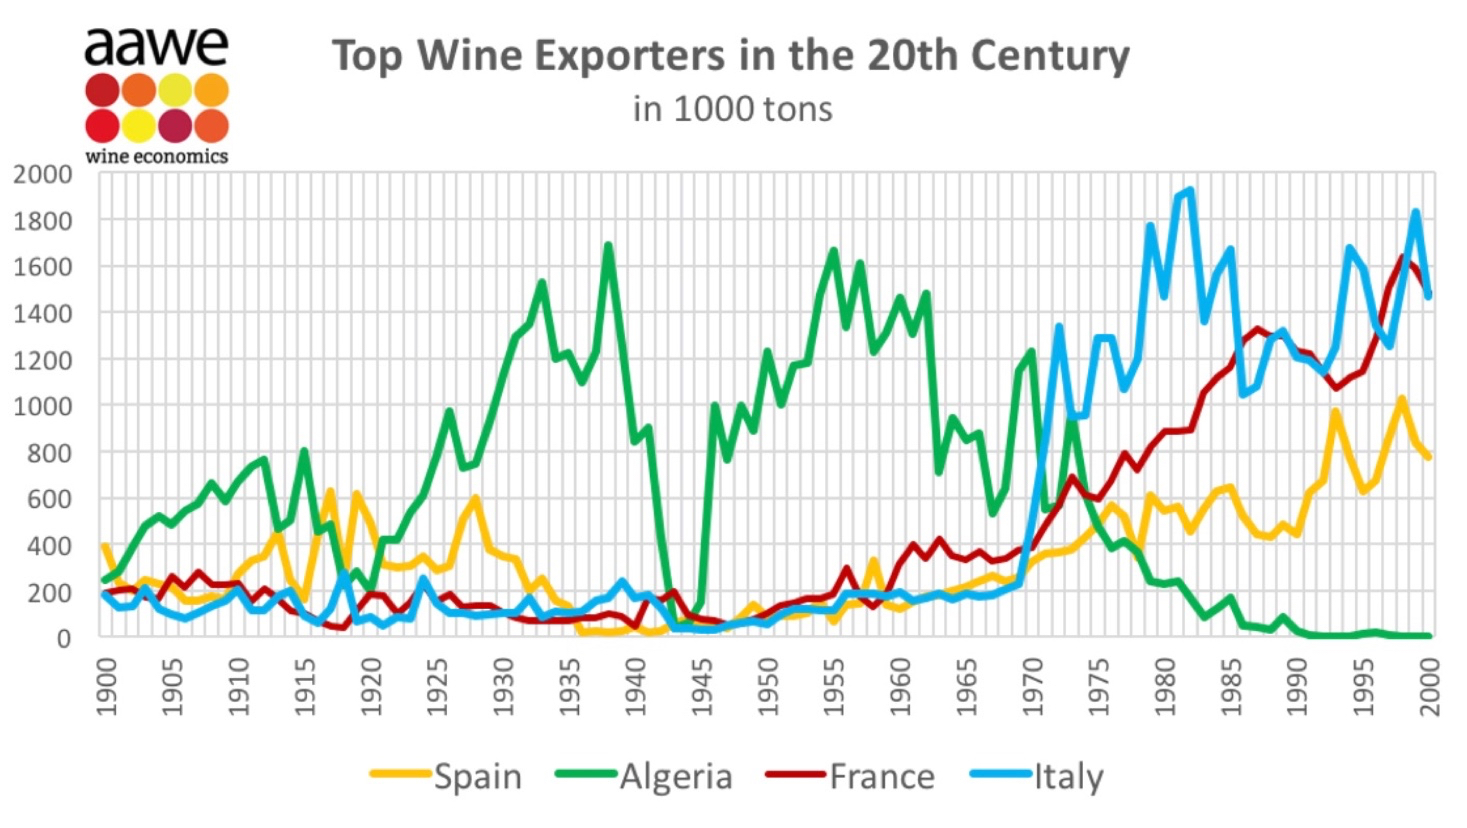 Italy makes more wine AND exports more wine than any other country. And while Algeria has a fascinating wine story, the take away here is that Italy has been the world's #1 wine exporter since the early 1970s. With the French getting top honors in a few isolated vintages. (Also, we don't mind saying it again, we have a mad data crush on the  American Association of Wine Economists .)